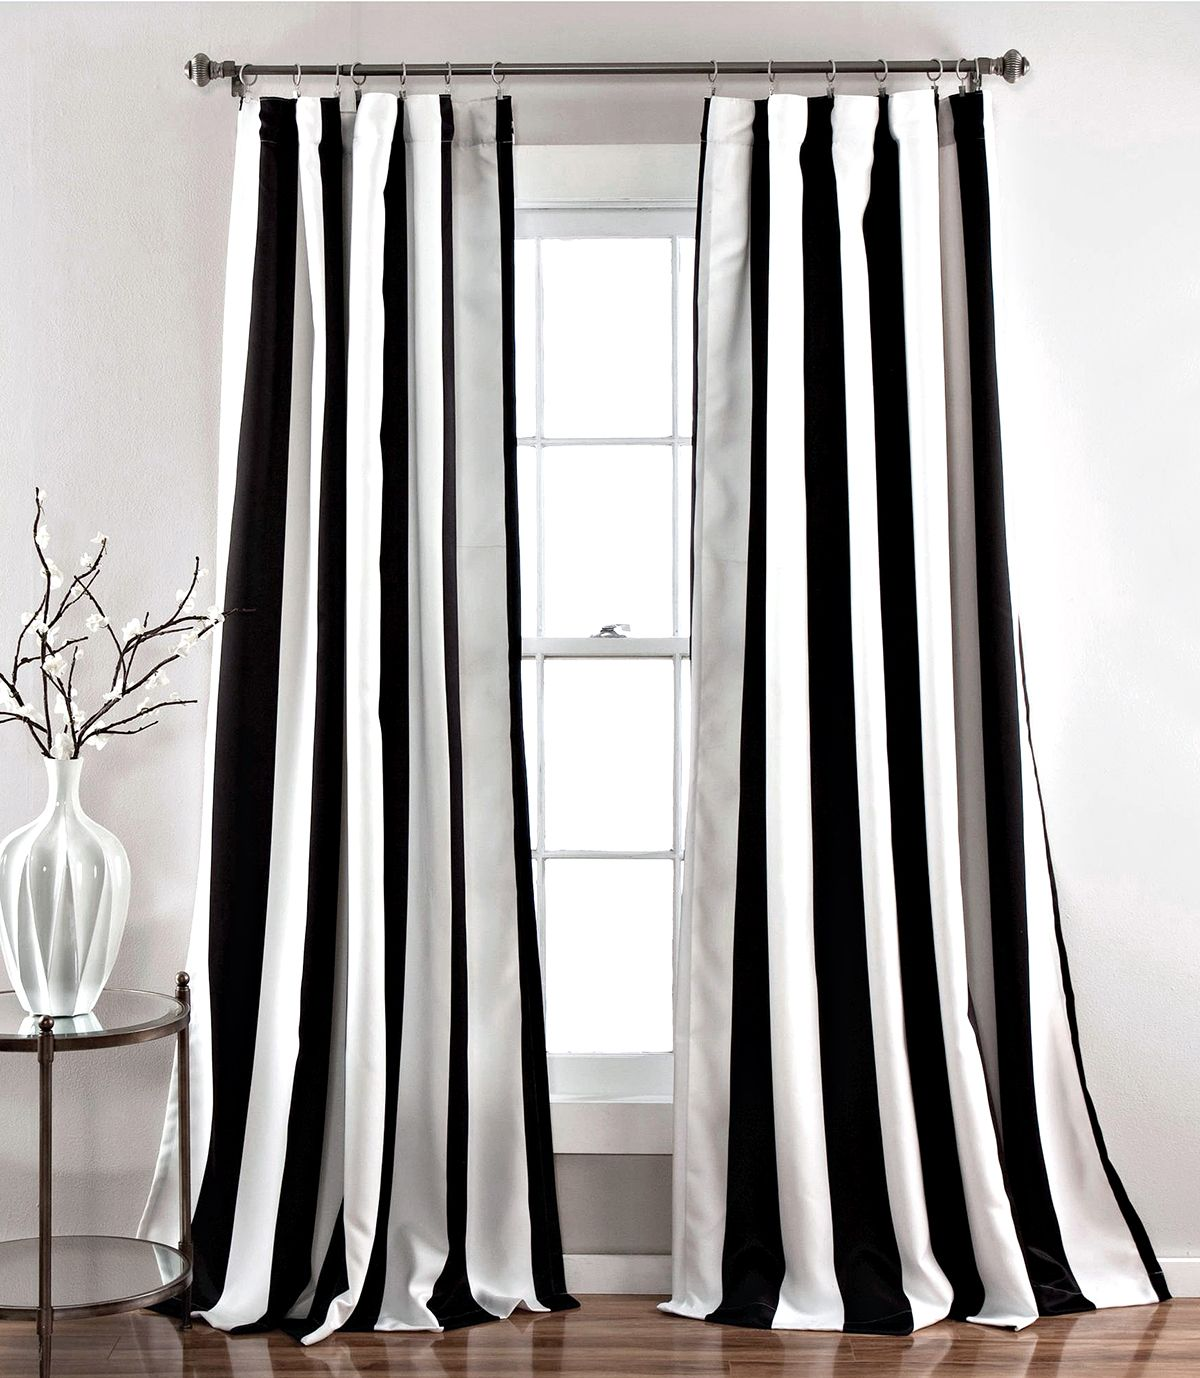 My Favorite Black And White Curtains Striped Room Window